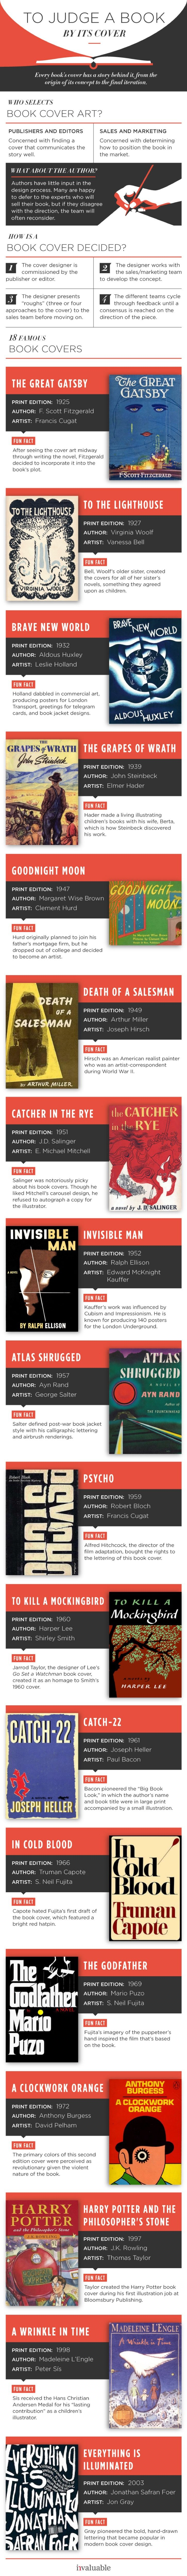 Famous book covers and fun facts about them #infographic